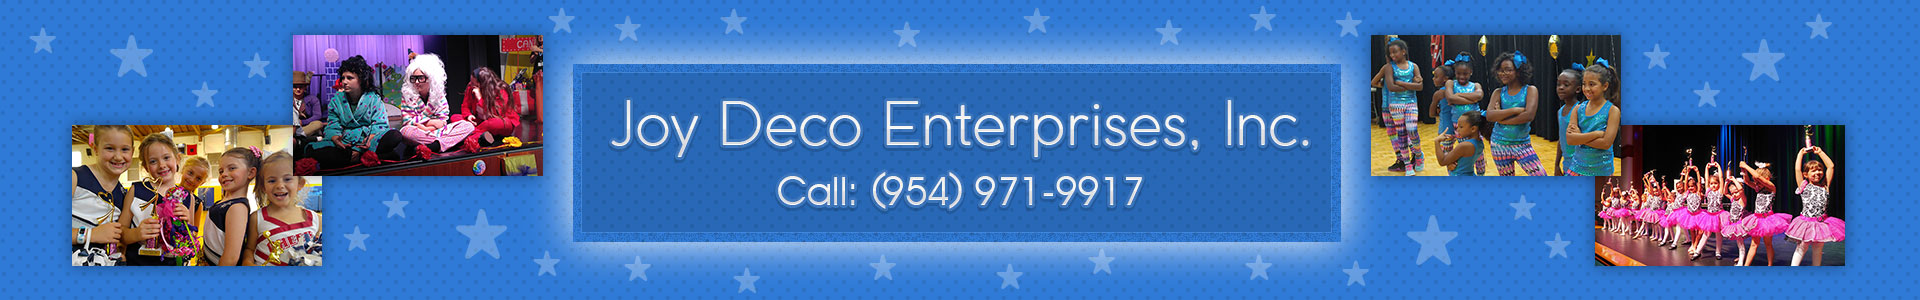 Joy Deco Enterprises, Inc.